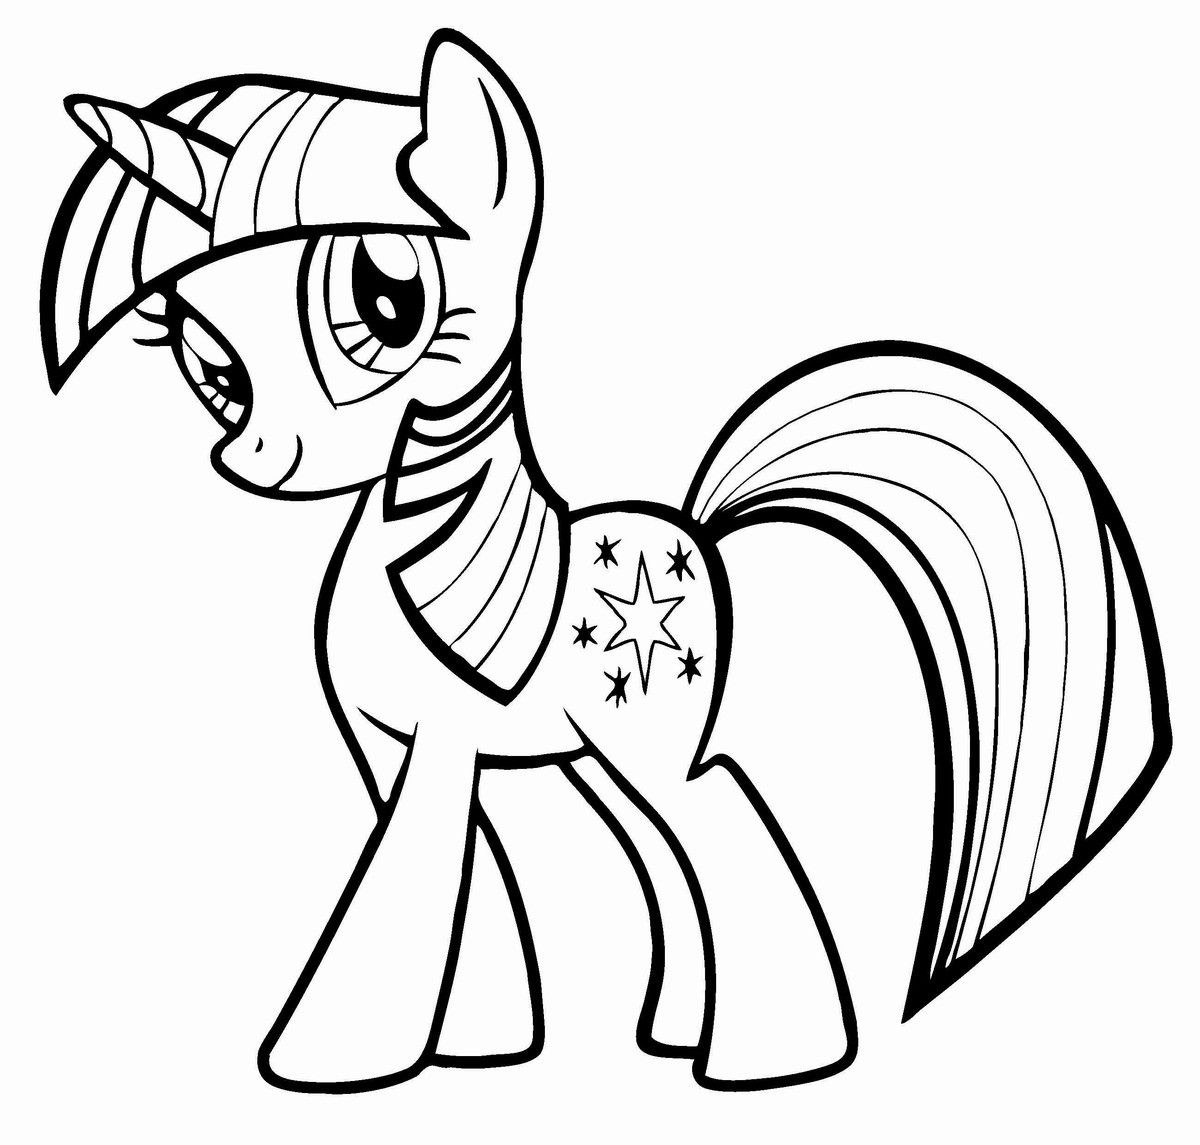 Printable My Little Pony Coloring Pages From The